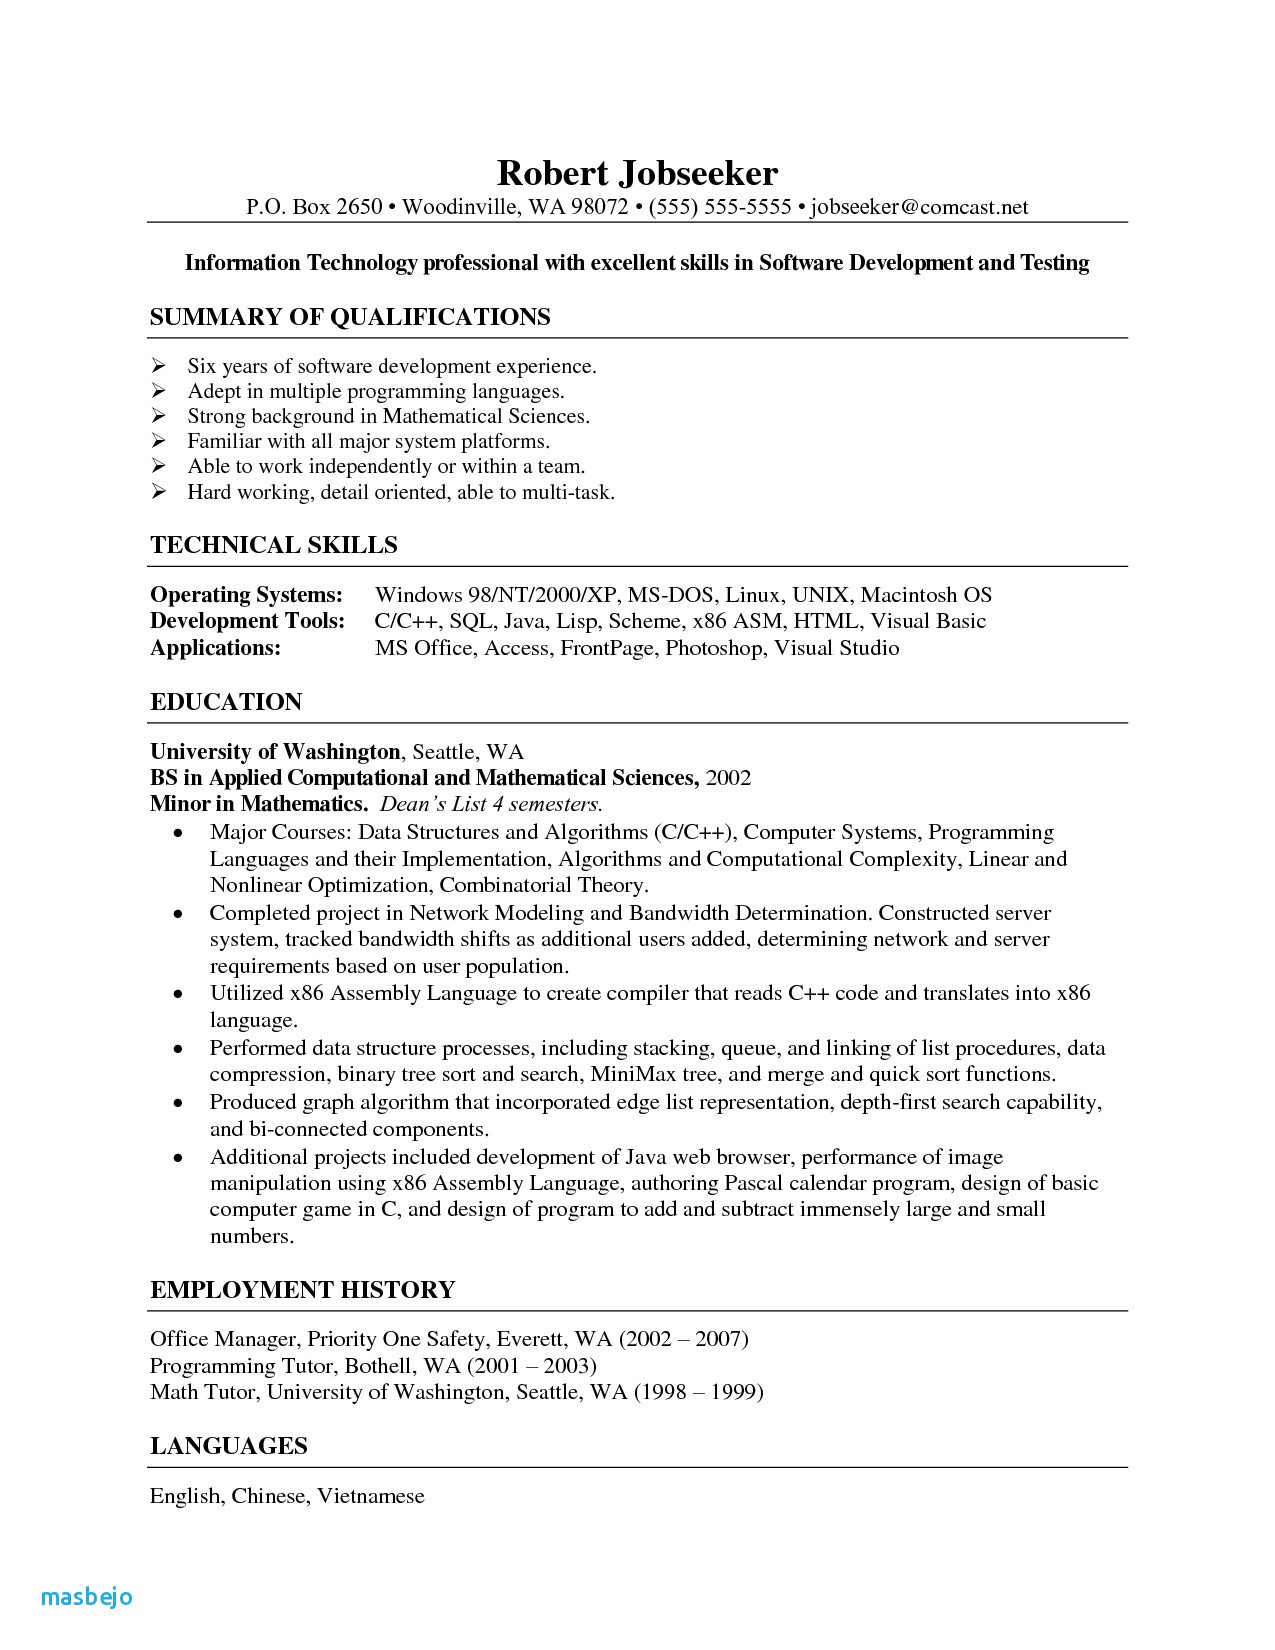 Medical Coder Resume Template - Medical Coding Fresher Resume Samples Resume Resume Examples